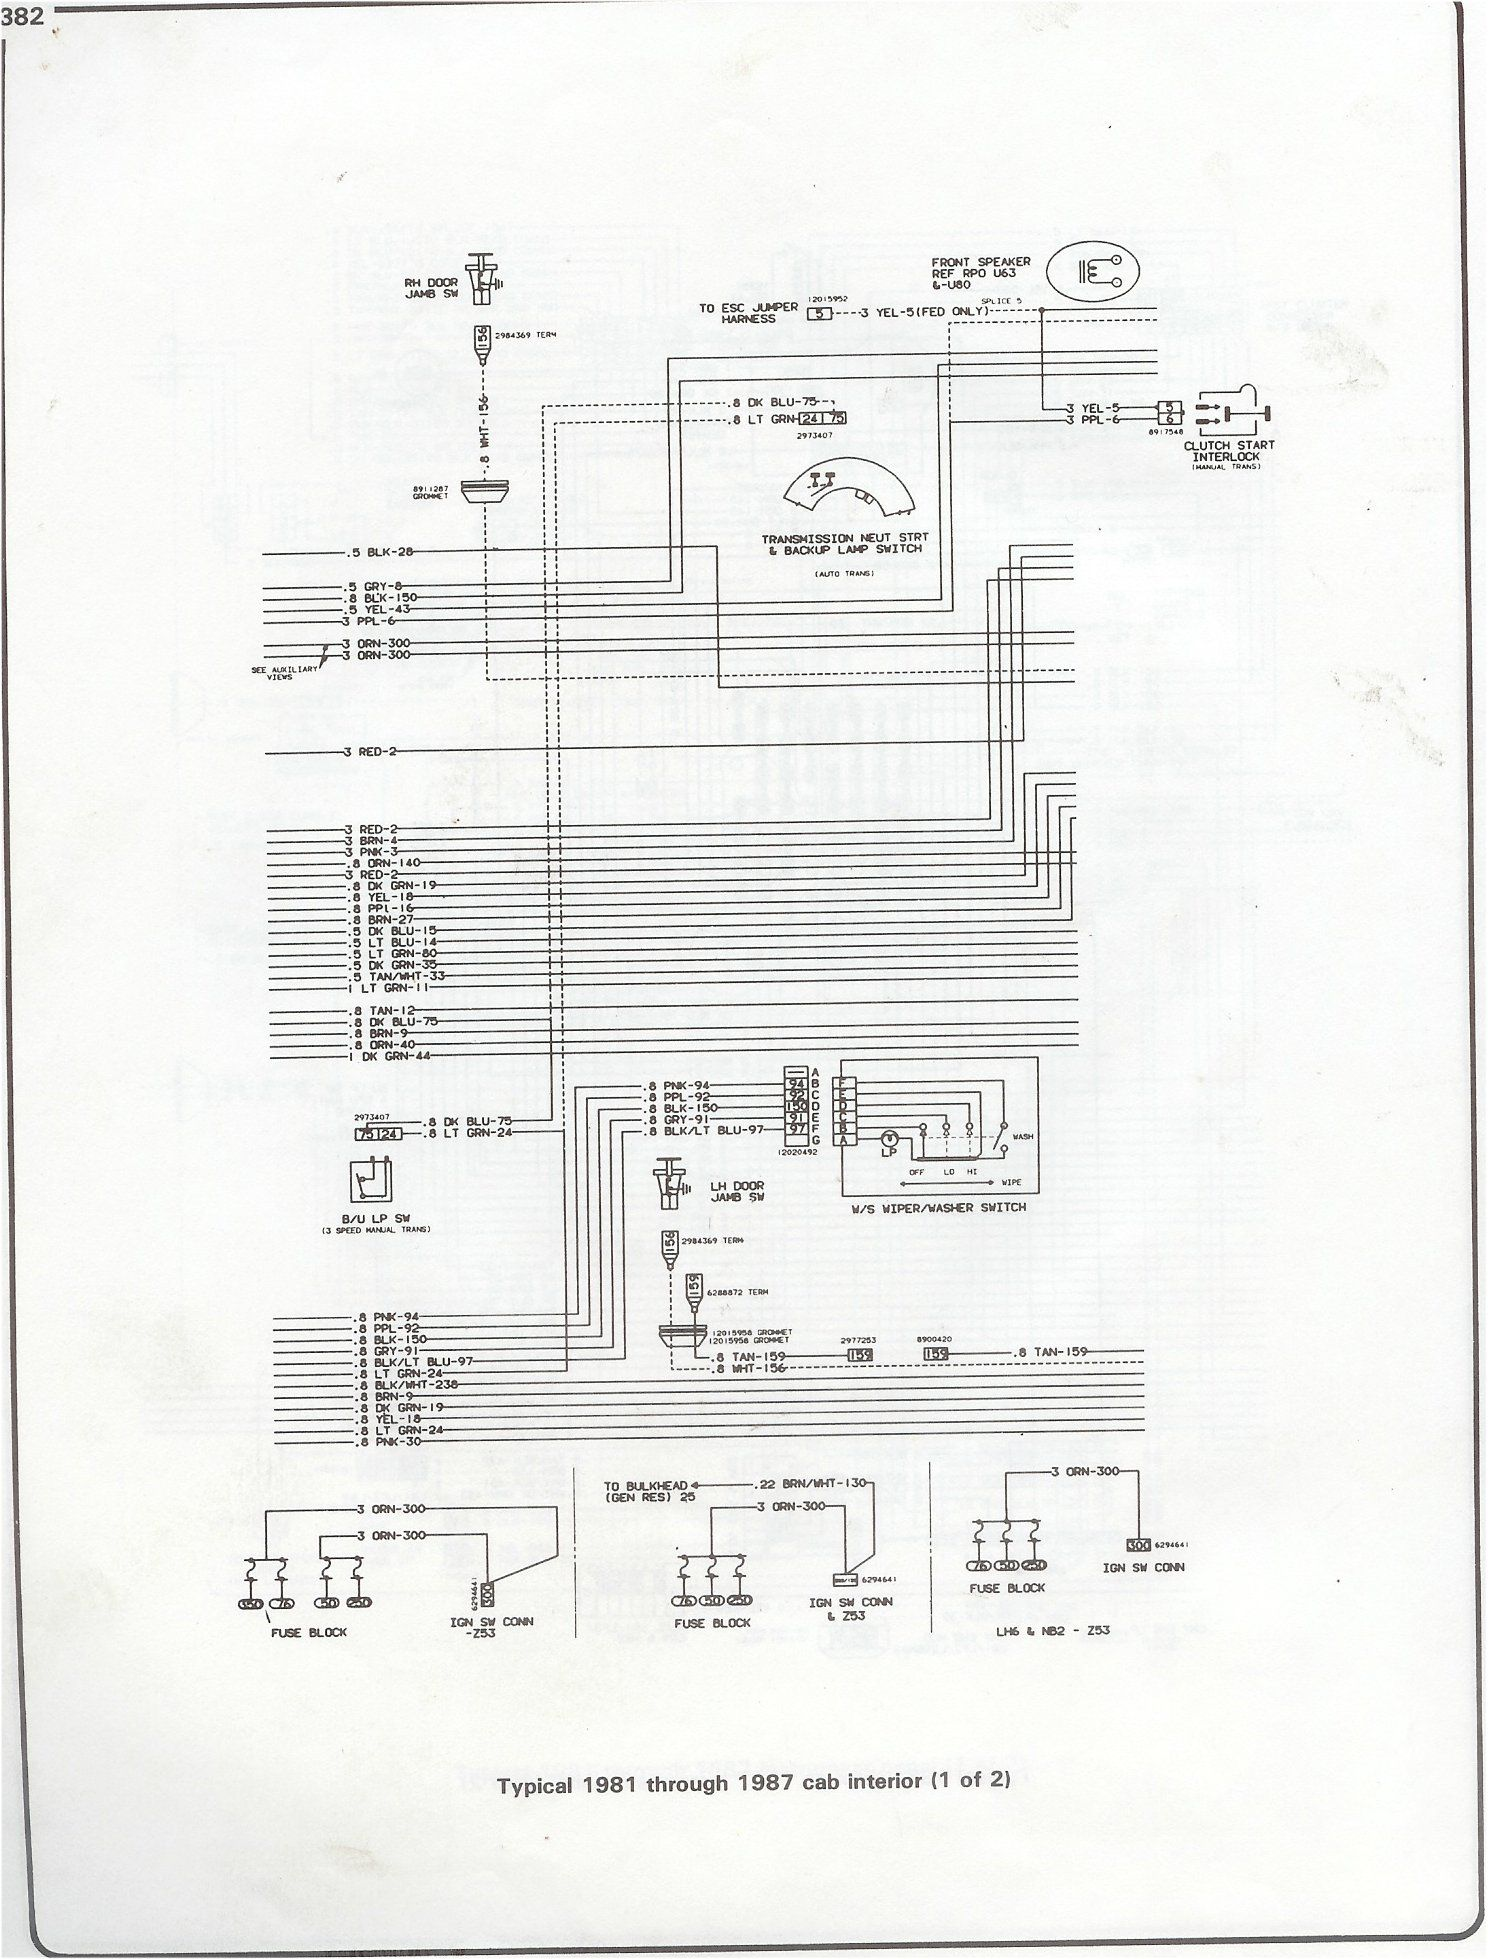 Pin By Roberto Hernandez On Truck Diagram Chevy Cab